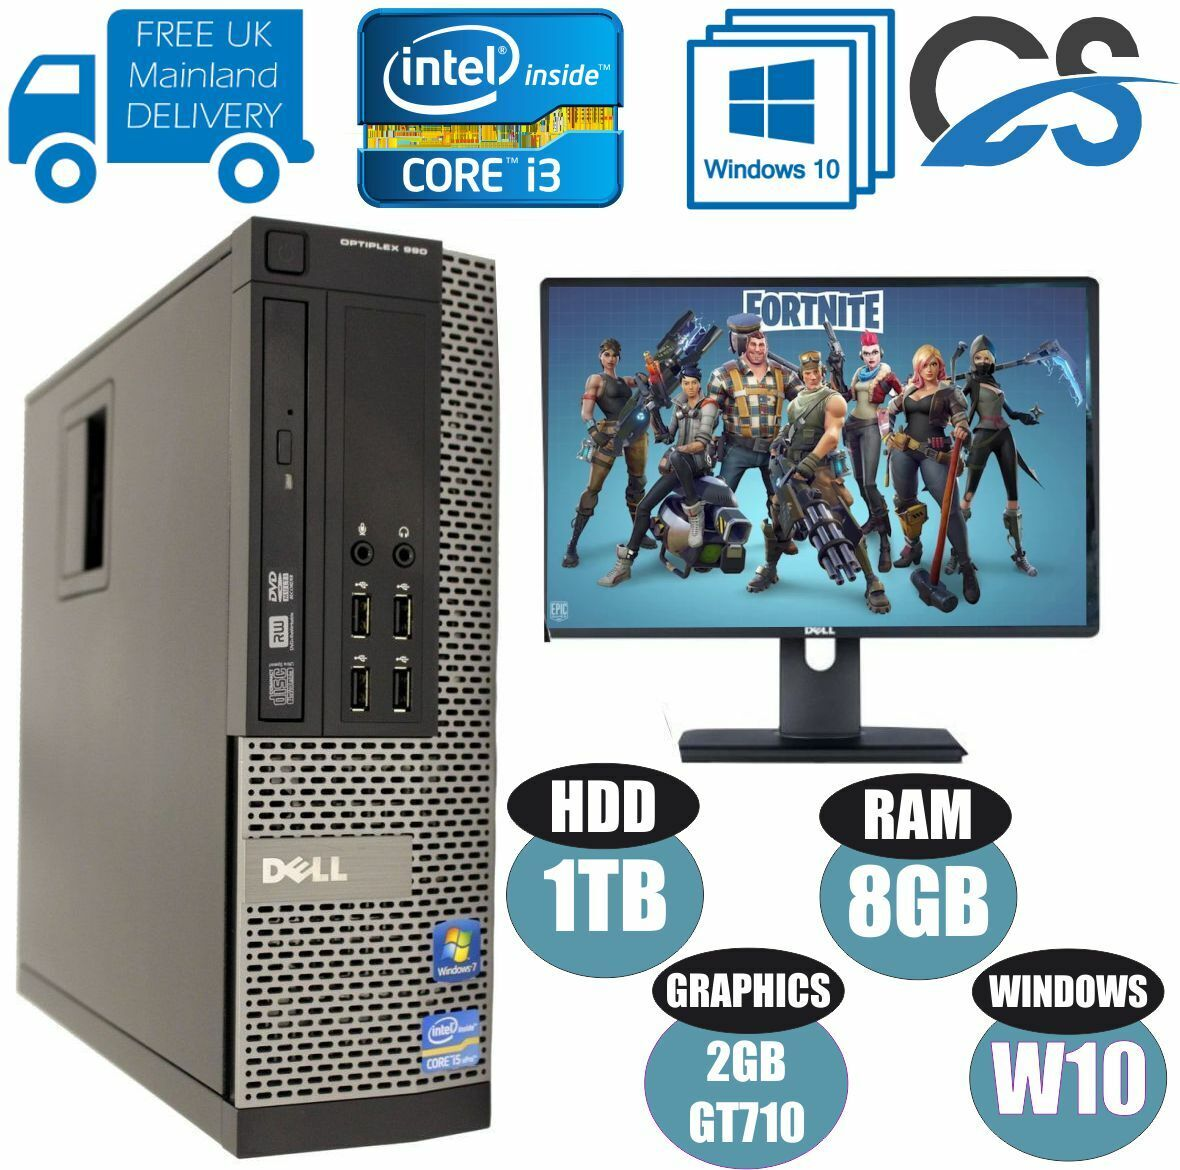 Computer Games - ULTRA FAST GAMING DELL OPTIPLEX BUNDLE TOWER PC COMPUTER INTEL i3 8GB 1TB GT710